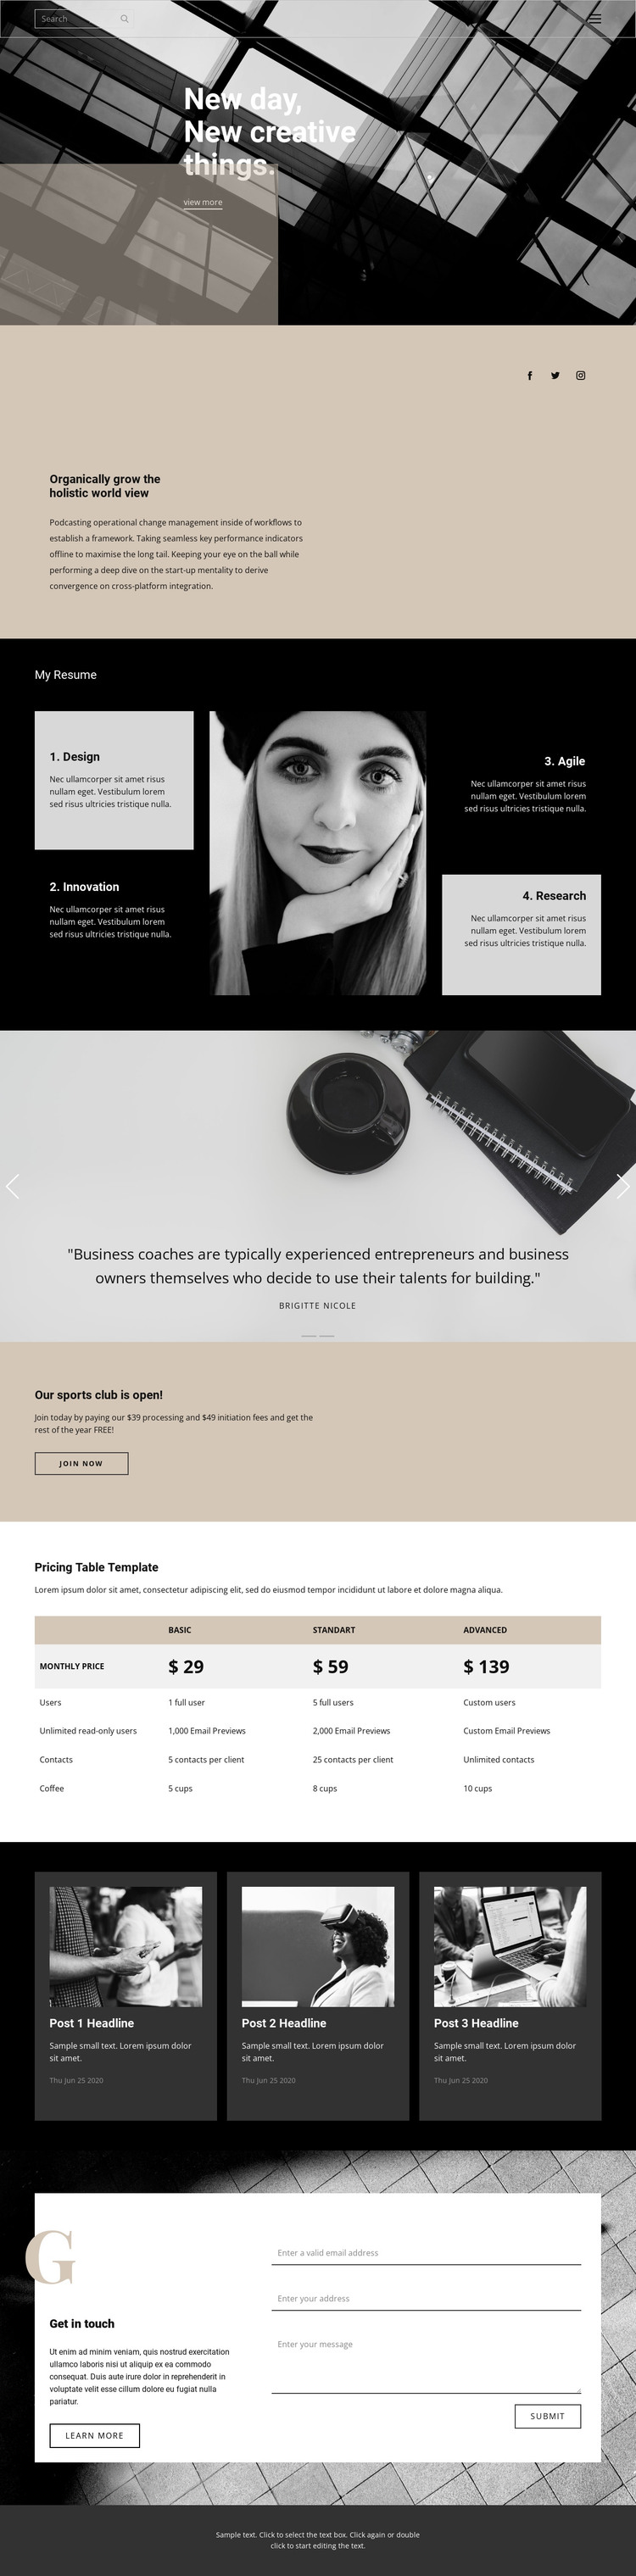 Where to start a business HTML Template